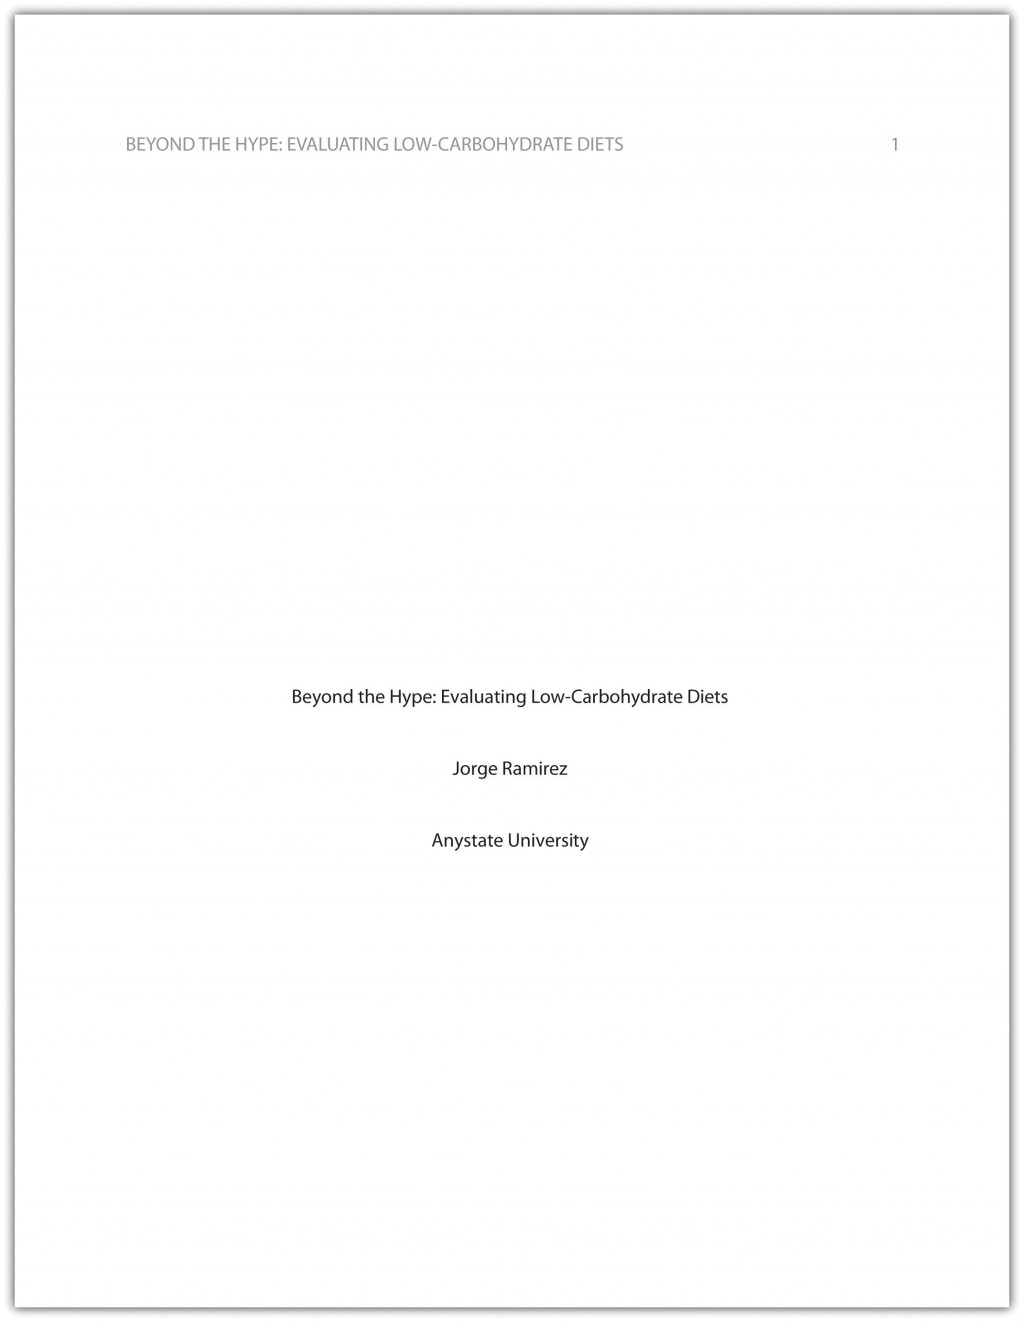 002 Research Paper Cover Page Apa Excellent Layout Format Example Style Large